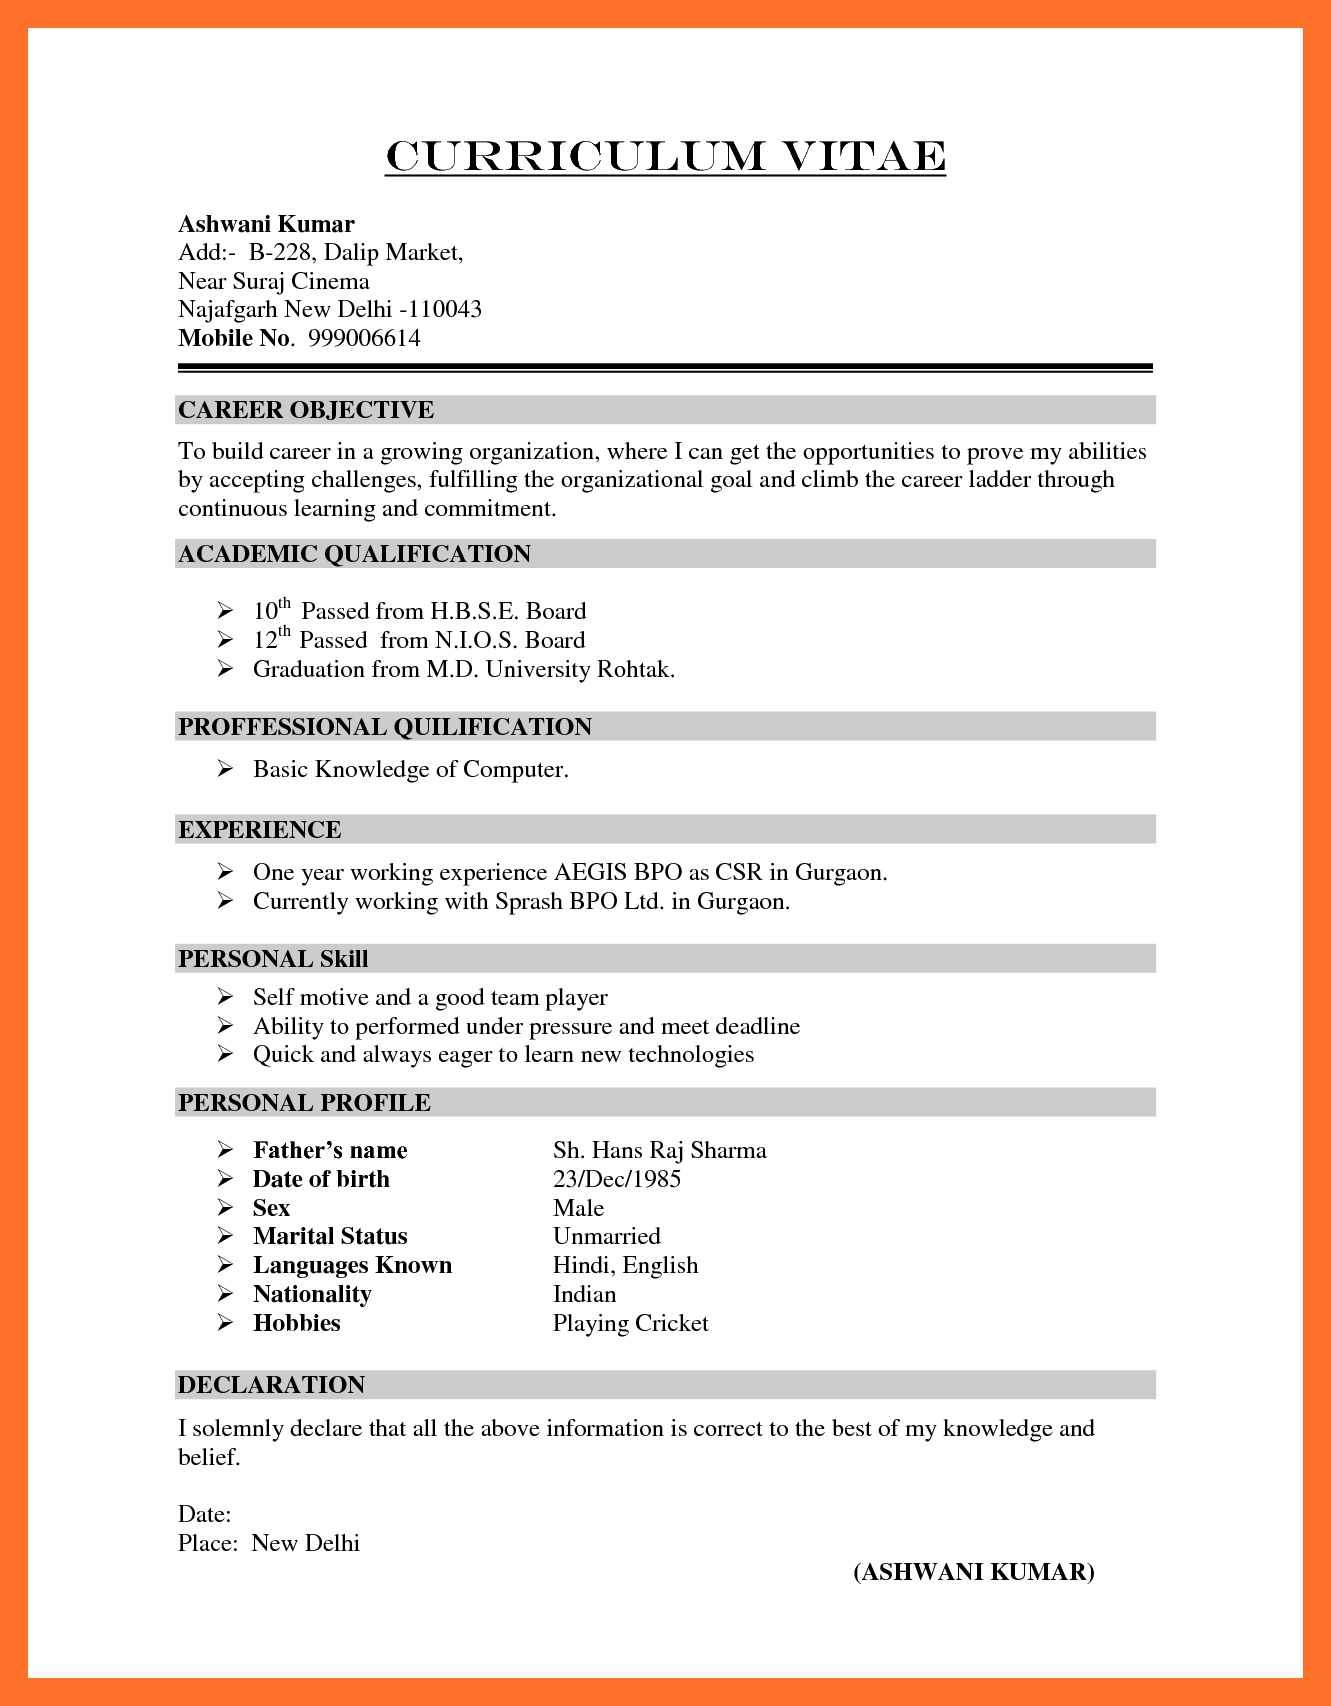 a curriculum vitae meaning